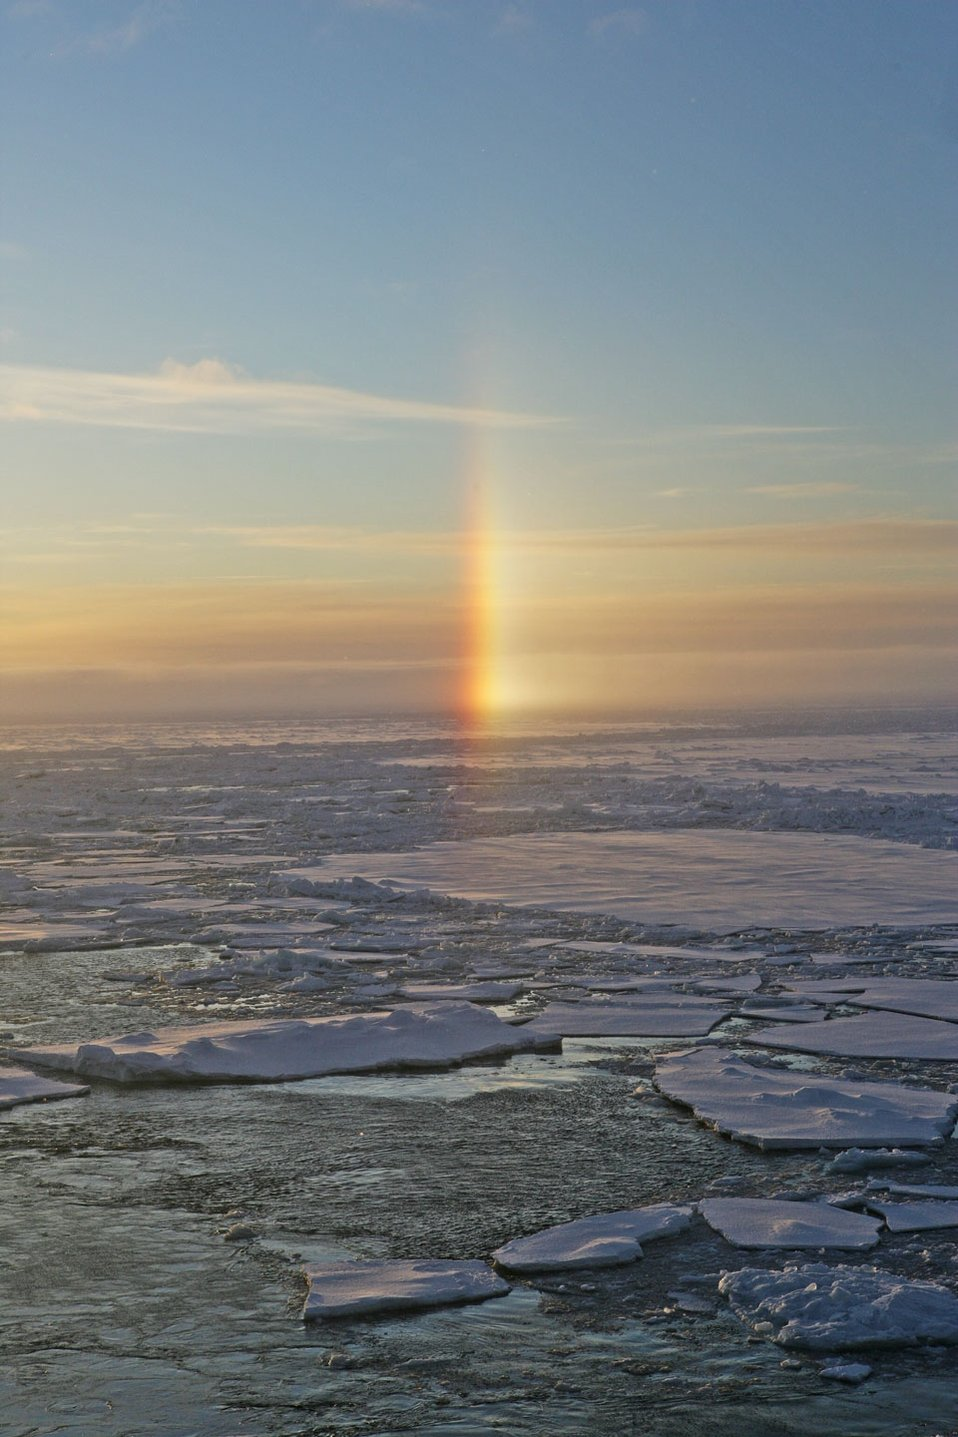 A sun dog - an atmosphere phenomenom caused by refraction of sunlight through ice crystals in the atmosphere.  See: http://www.naturalsciences.org/education/arctic/